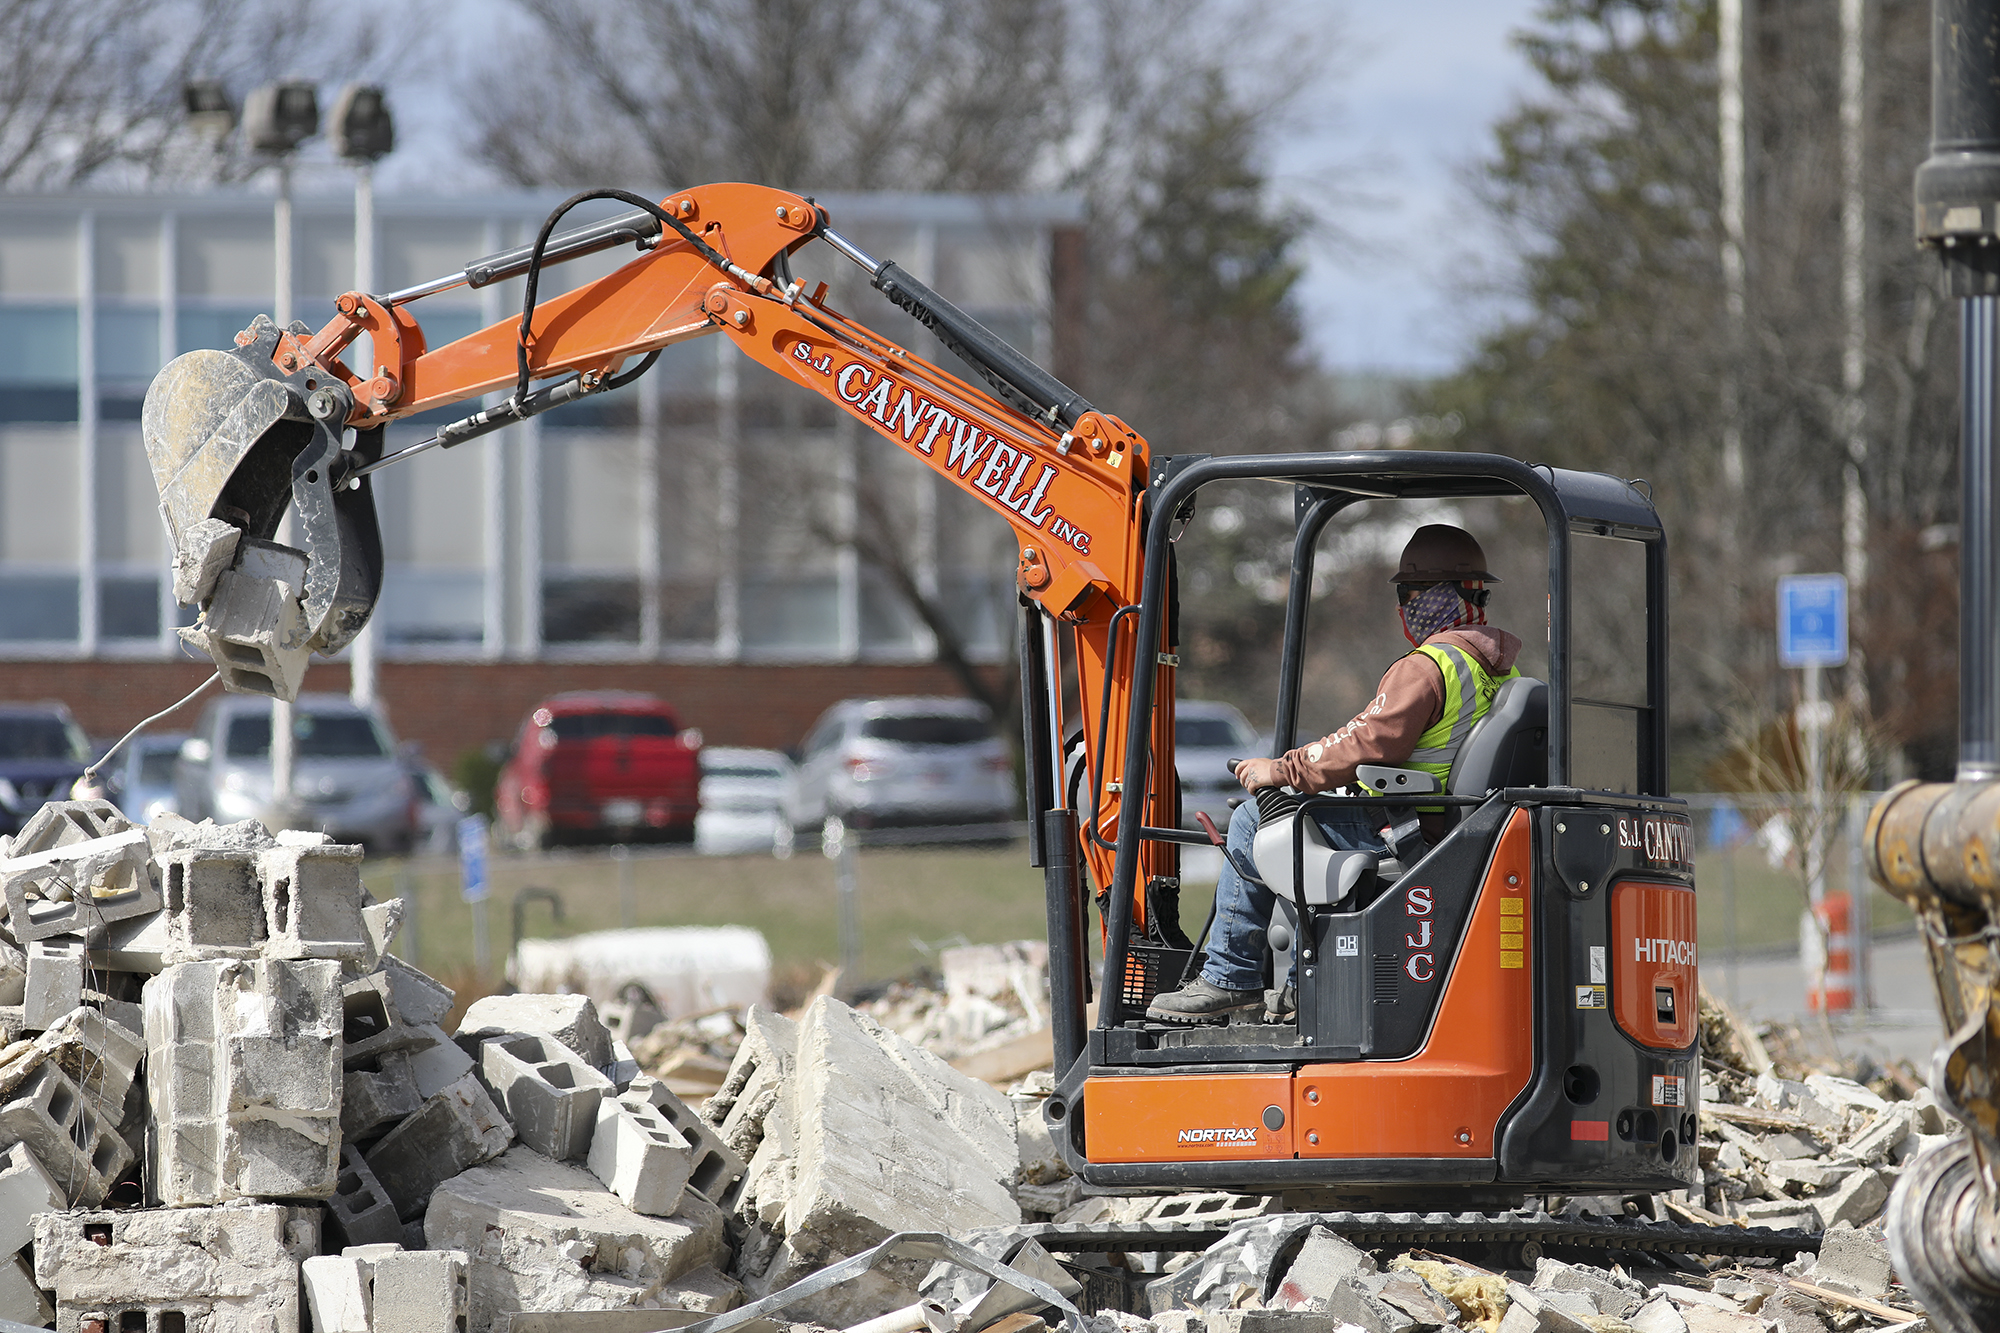 A photo of a smaller backhoe picking cinderblocks for recycling at the construction site.